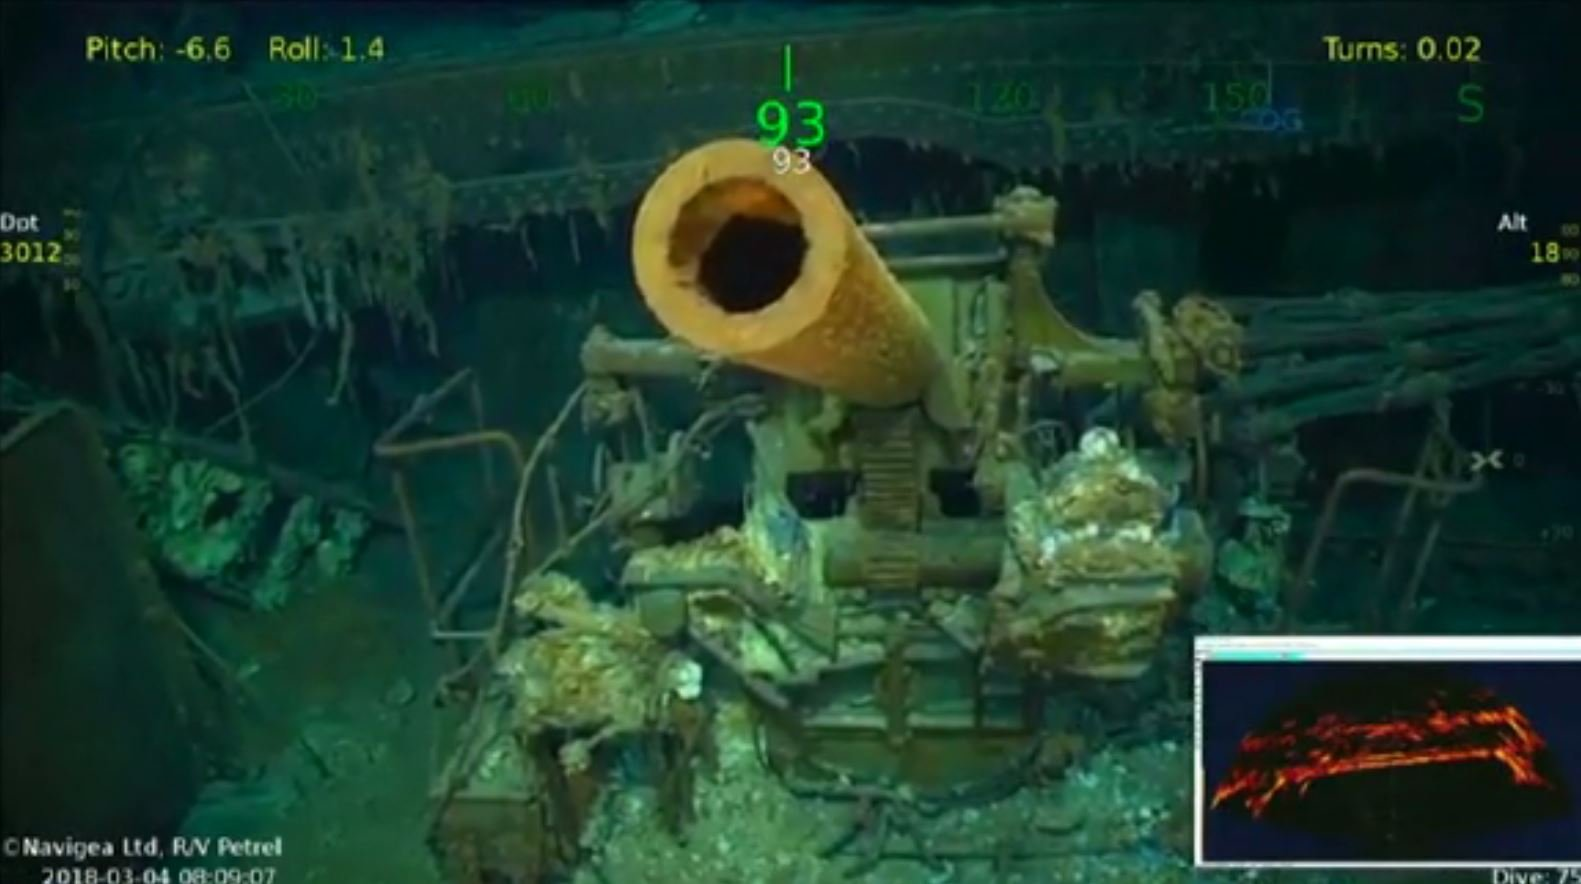 A team of explorers led by Paul Allen, the billionaire co-founder of Microsoft, has discovered the wreckage of the USS Lexington, a U.S. aircraft carrier sunk in World War II. (Source: CNN/YouTube/The Sea Lad)